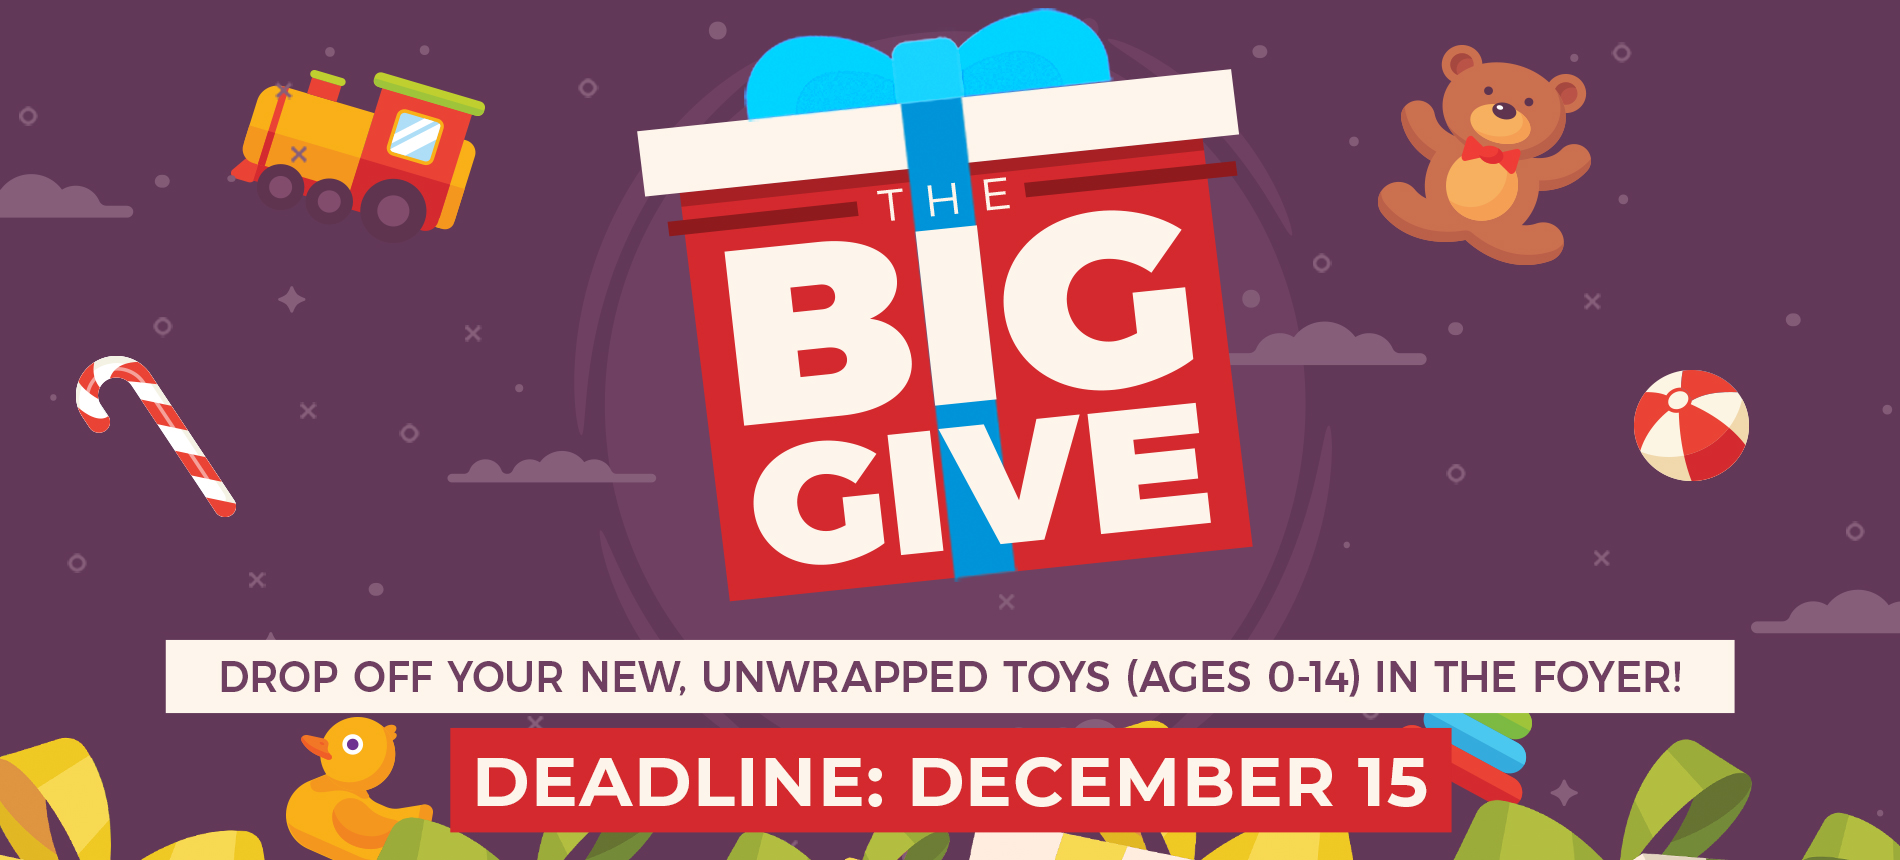 WHCE | The Big Give 2020